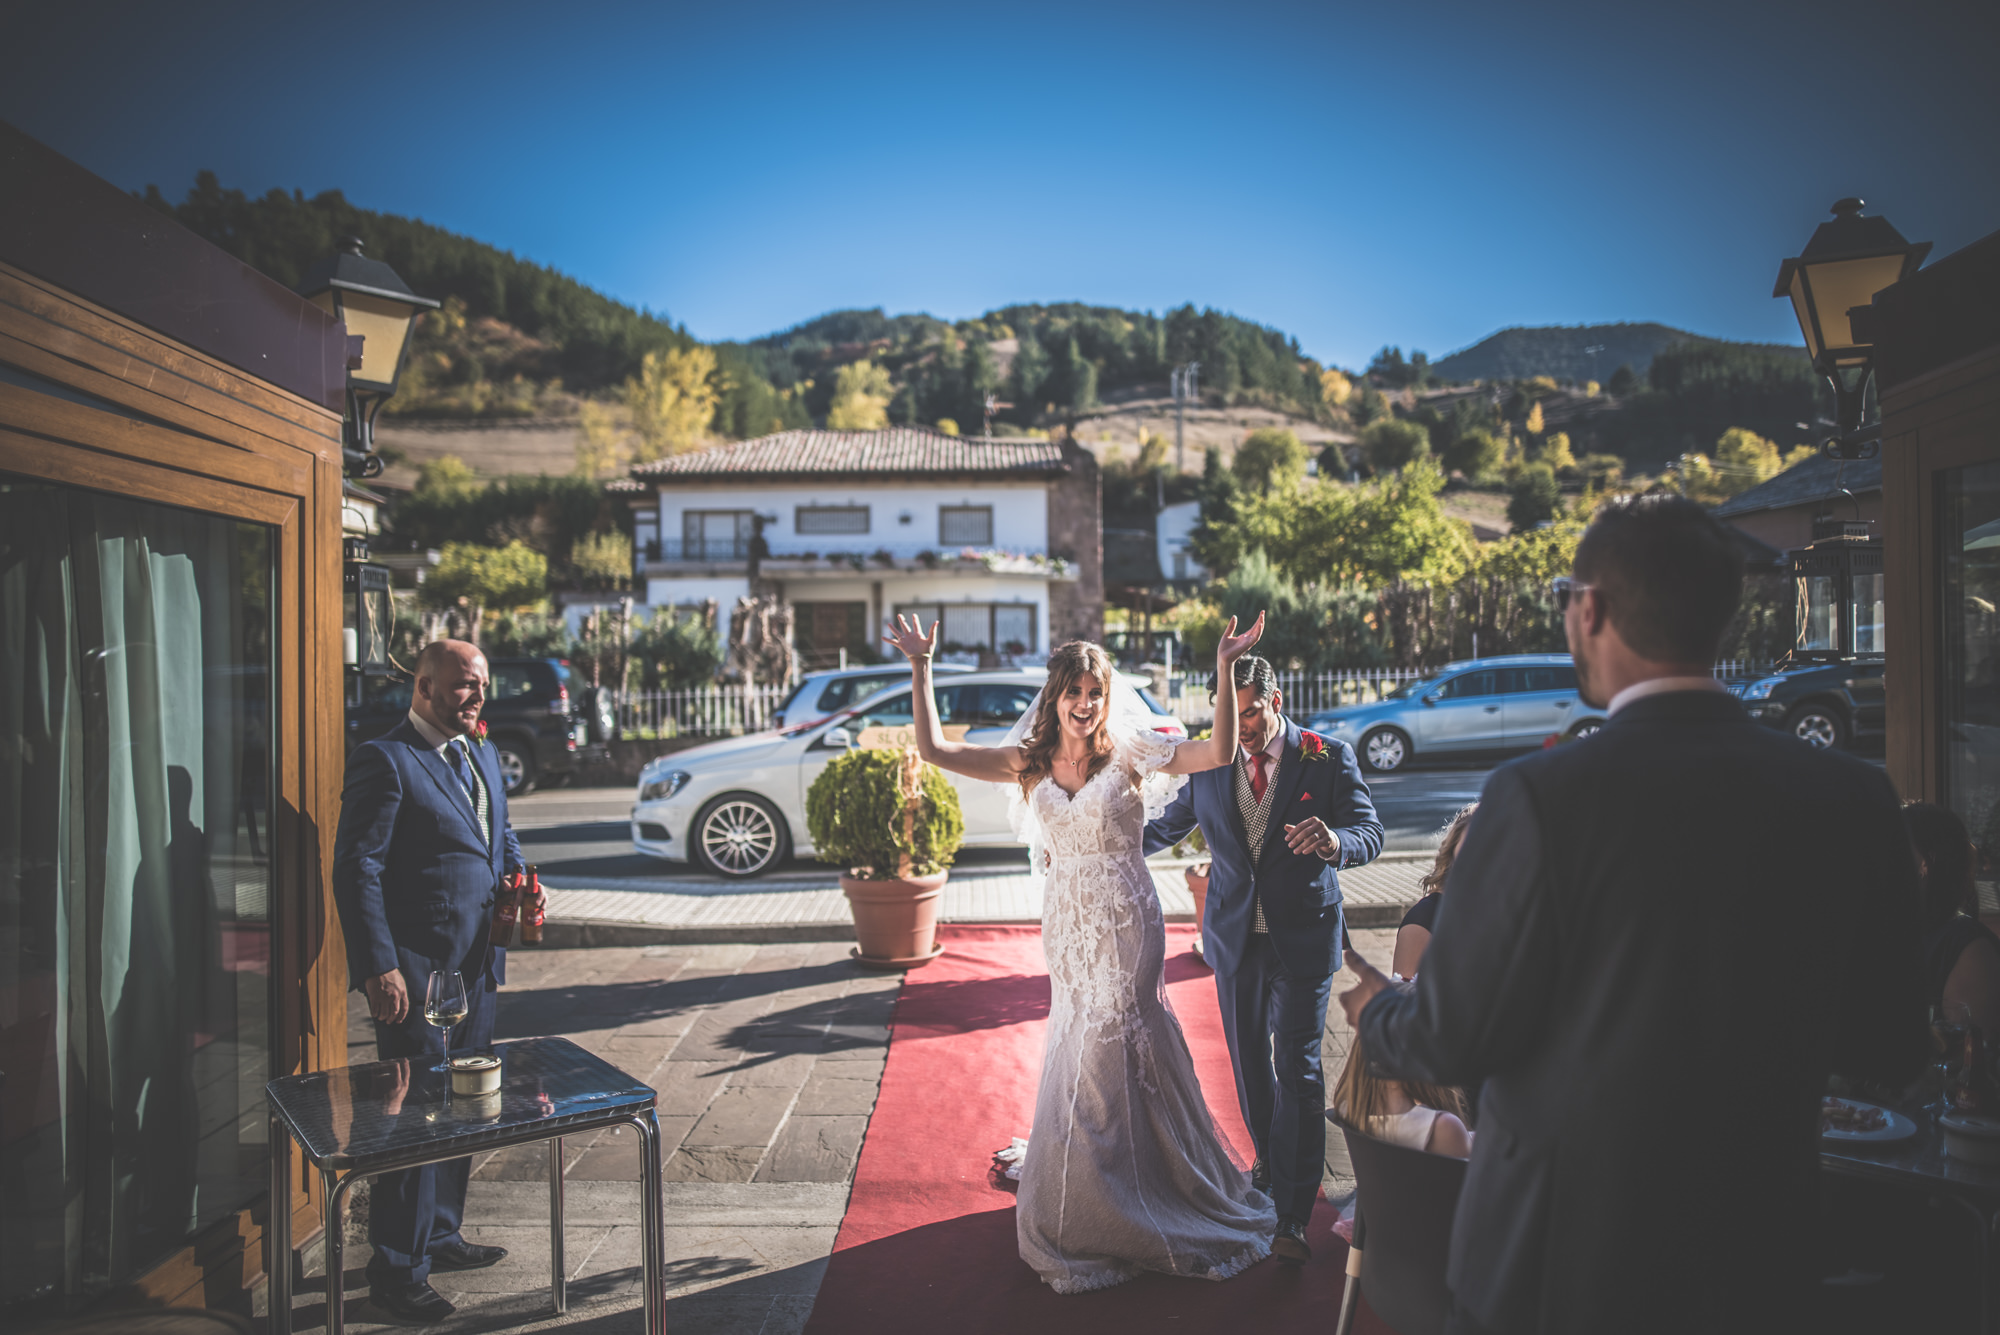 Amy-and-Andres-destination-wedding-in-Potes-Spain-Manu-Mendoza-Wedding-Photography-448.jpg